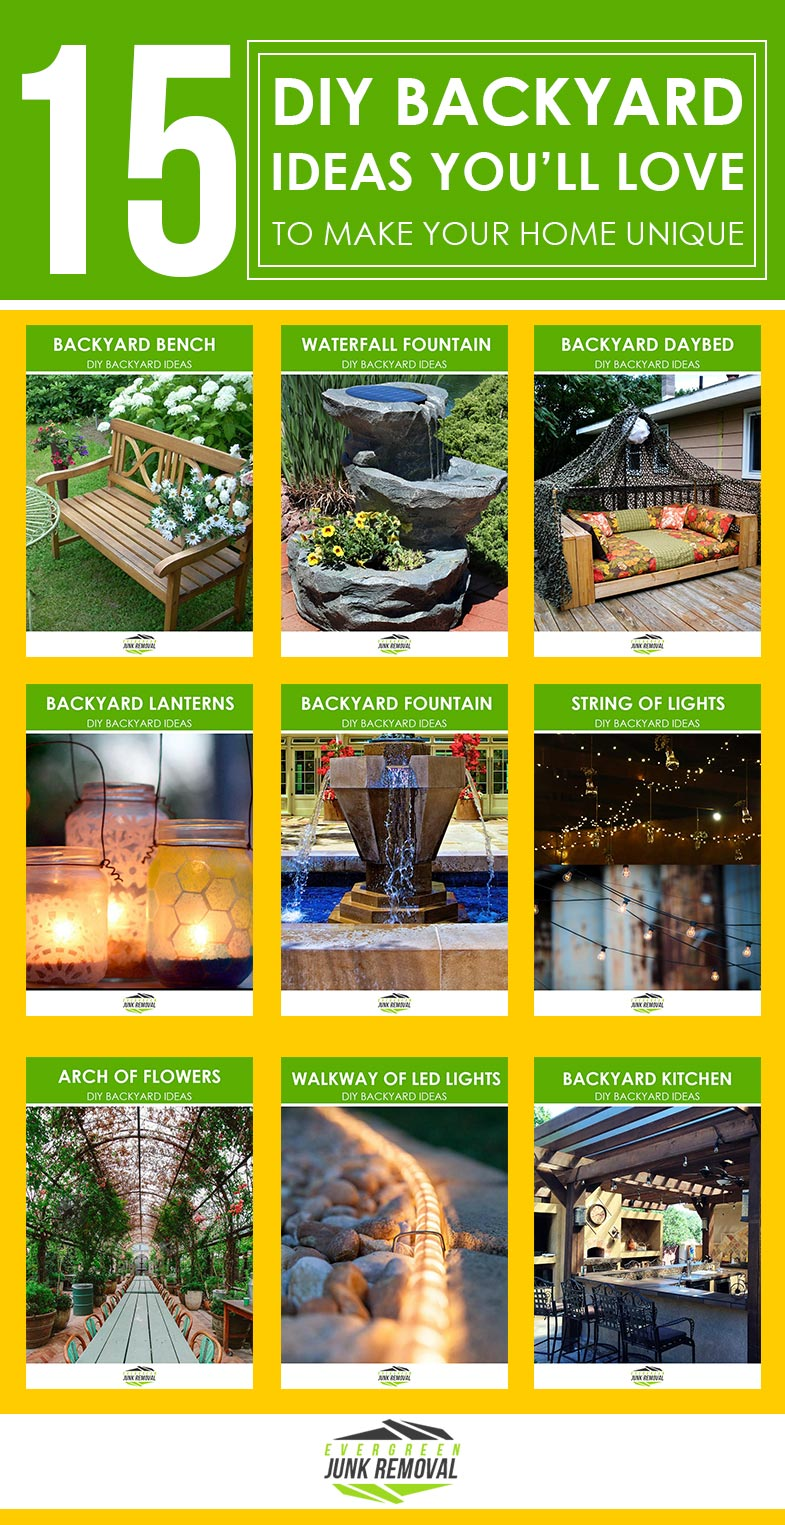 15 DIY Backyard Ideas